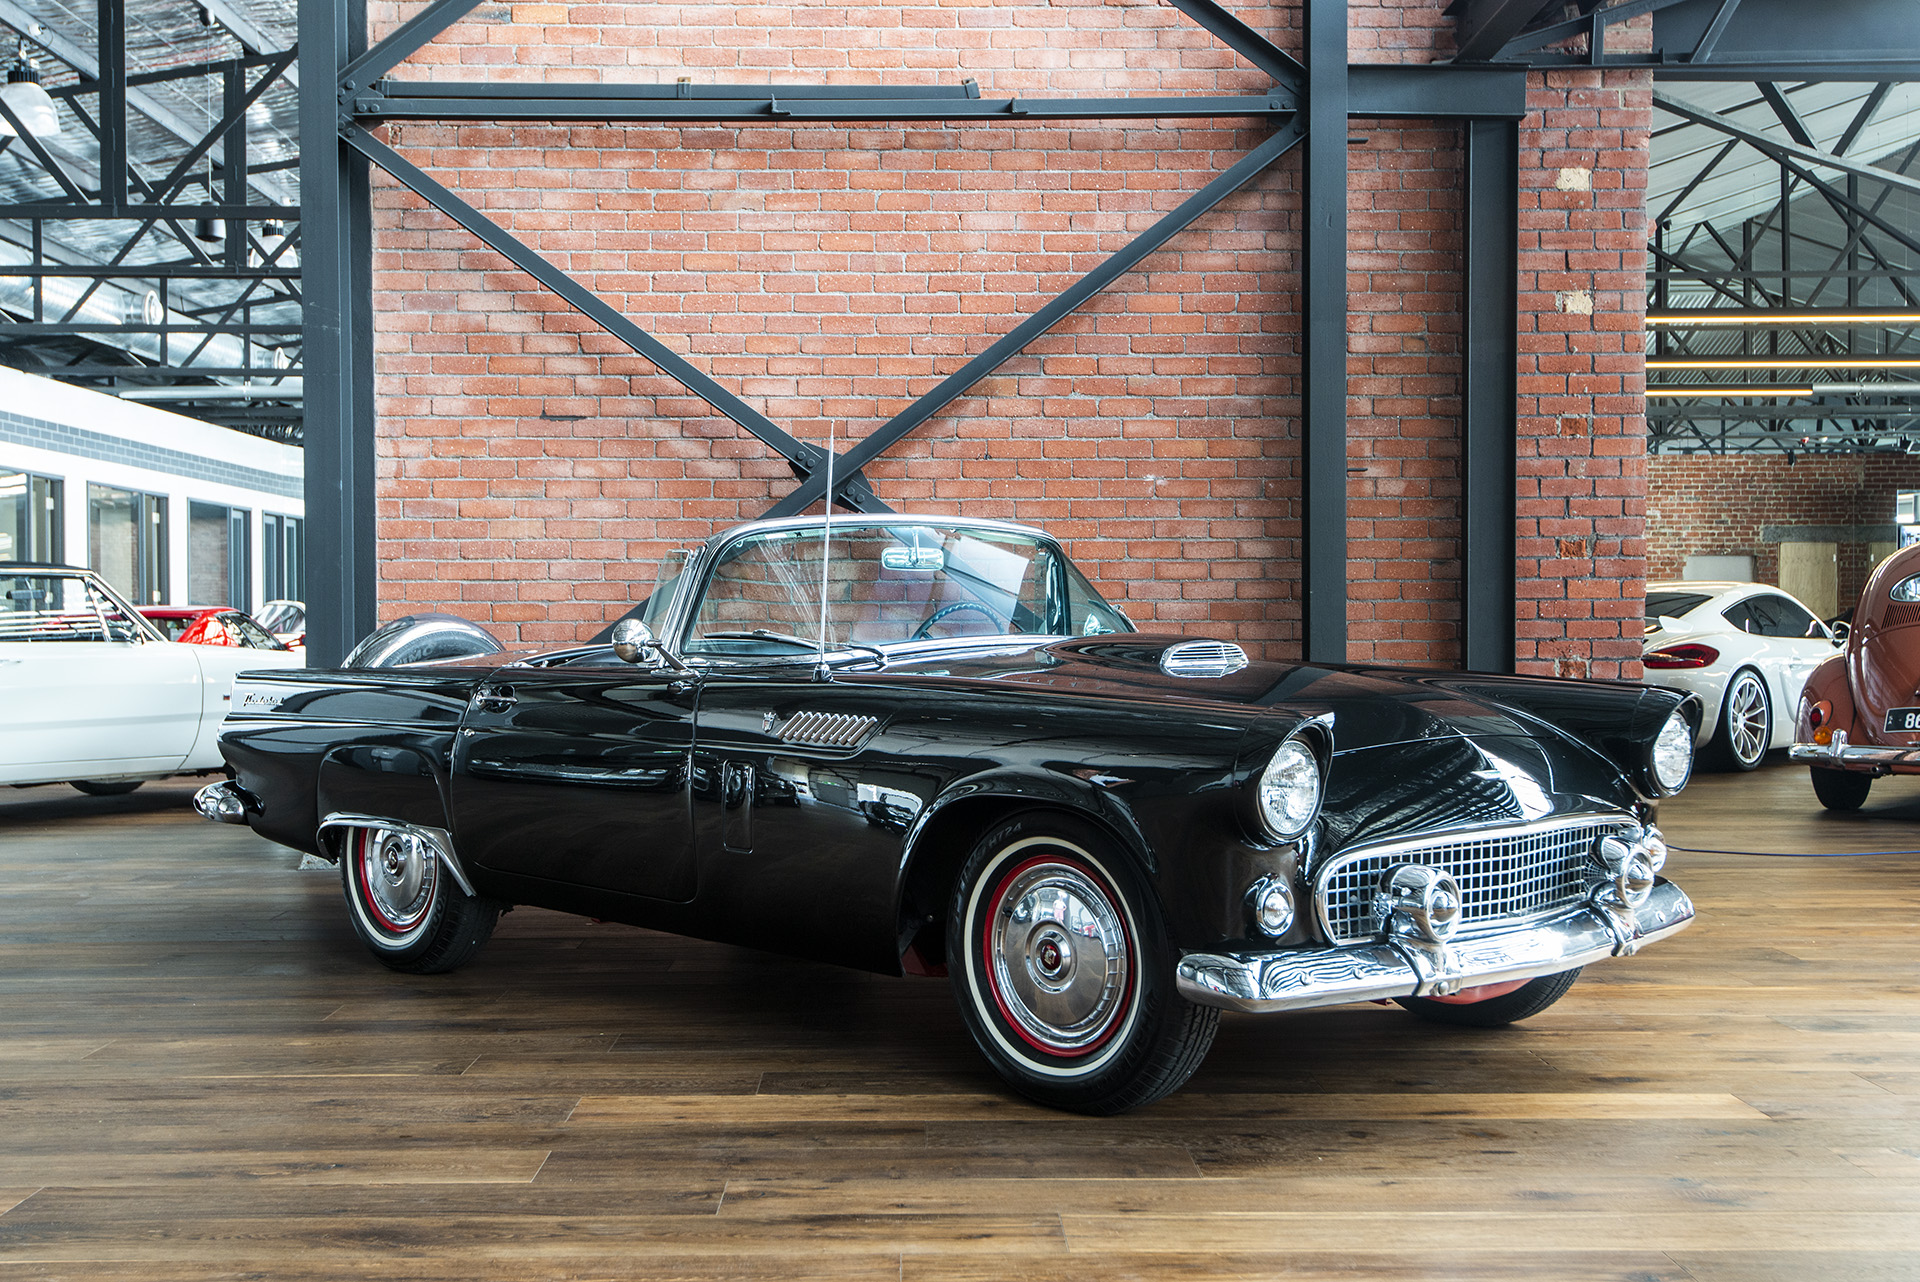 1956 Ford Thunderbird Hardtop Convertible Richmonds Classic And Prestige Cars Storage And Sales Adelaide Australia